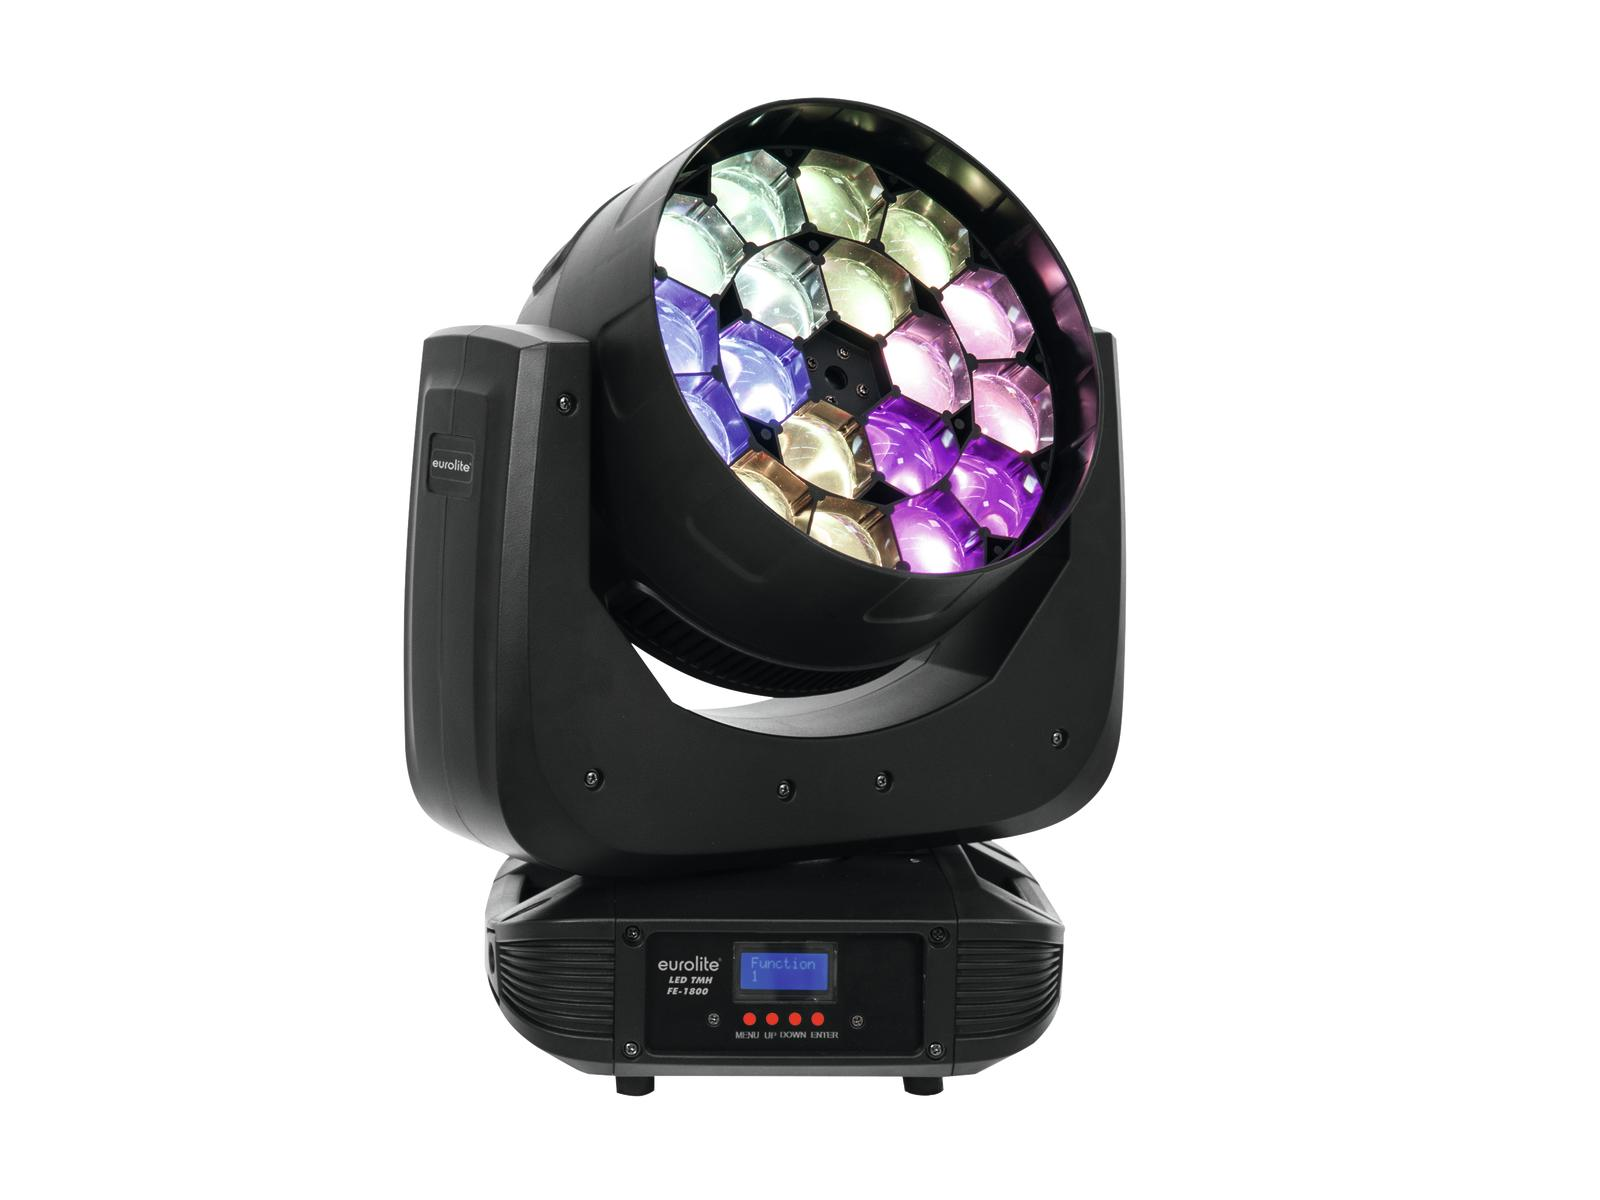 Effetto luce Light testa mobile BEAM Moving Head DMX 512 Eurolite TMH FE-1800